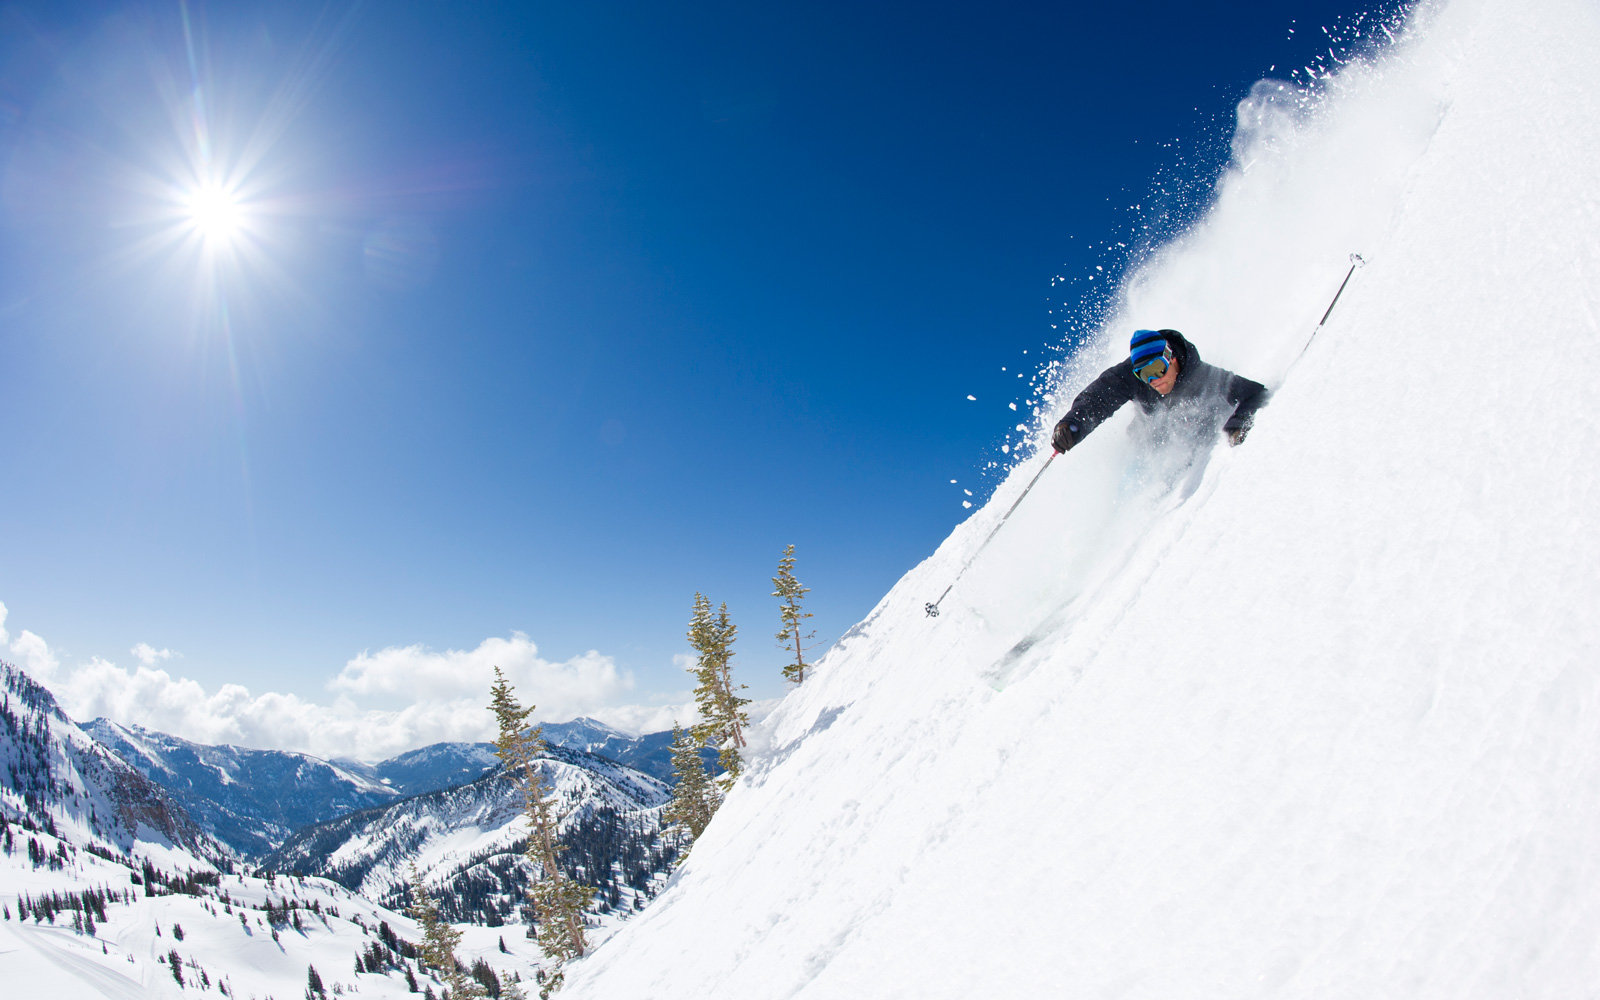 23 under-the-radar ski resorts where you'll save money and avoid the